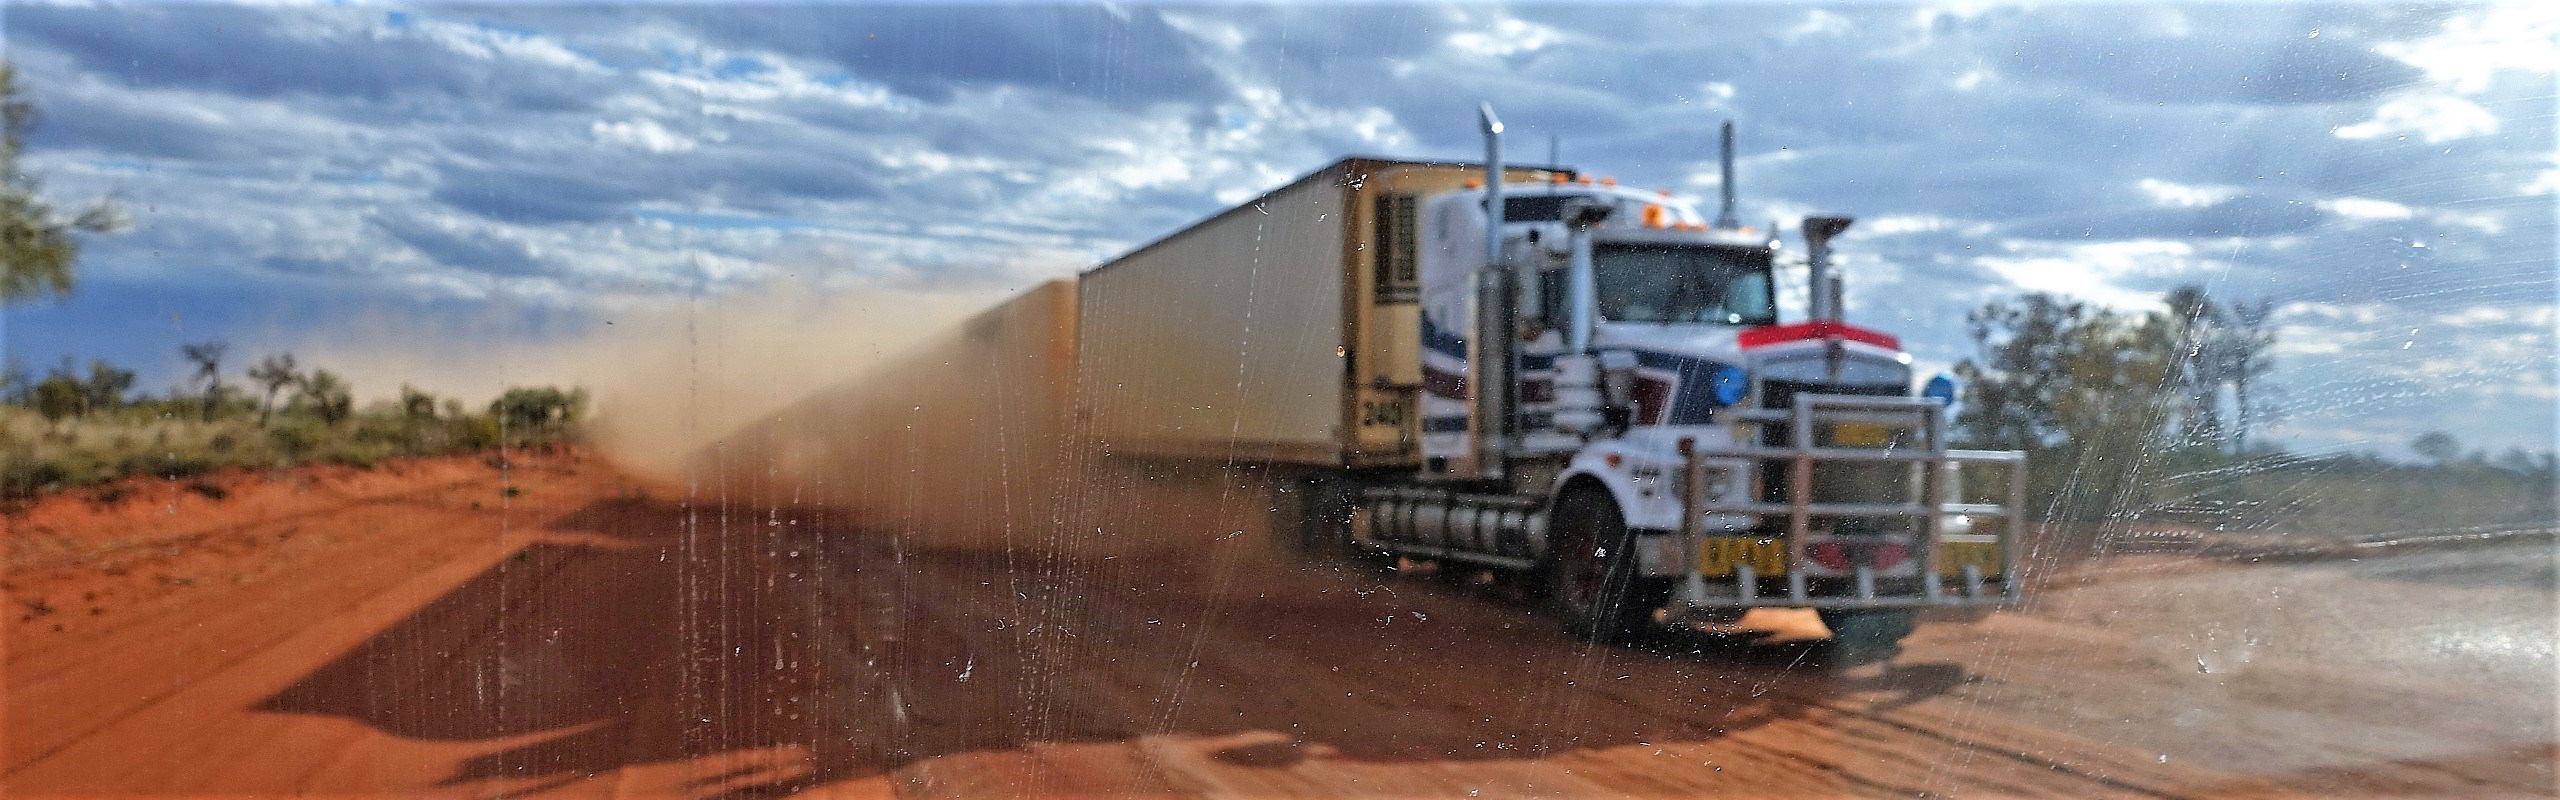 Roadtrain in Australian Outback